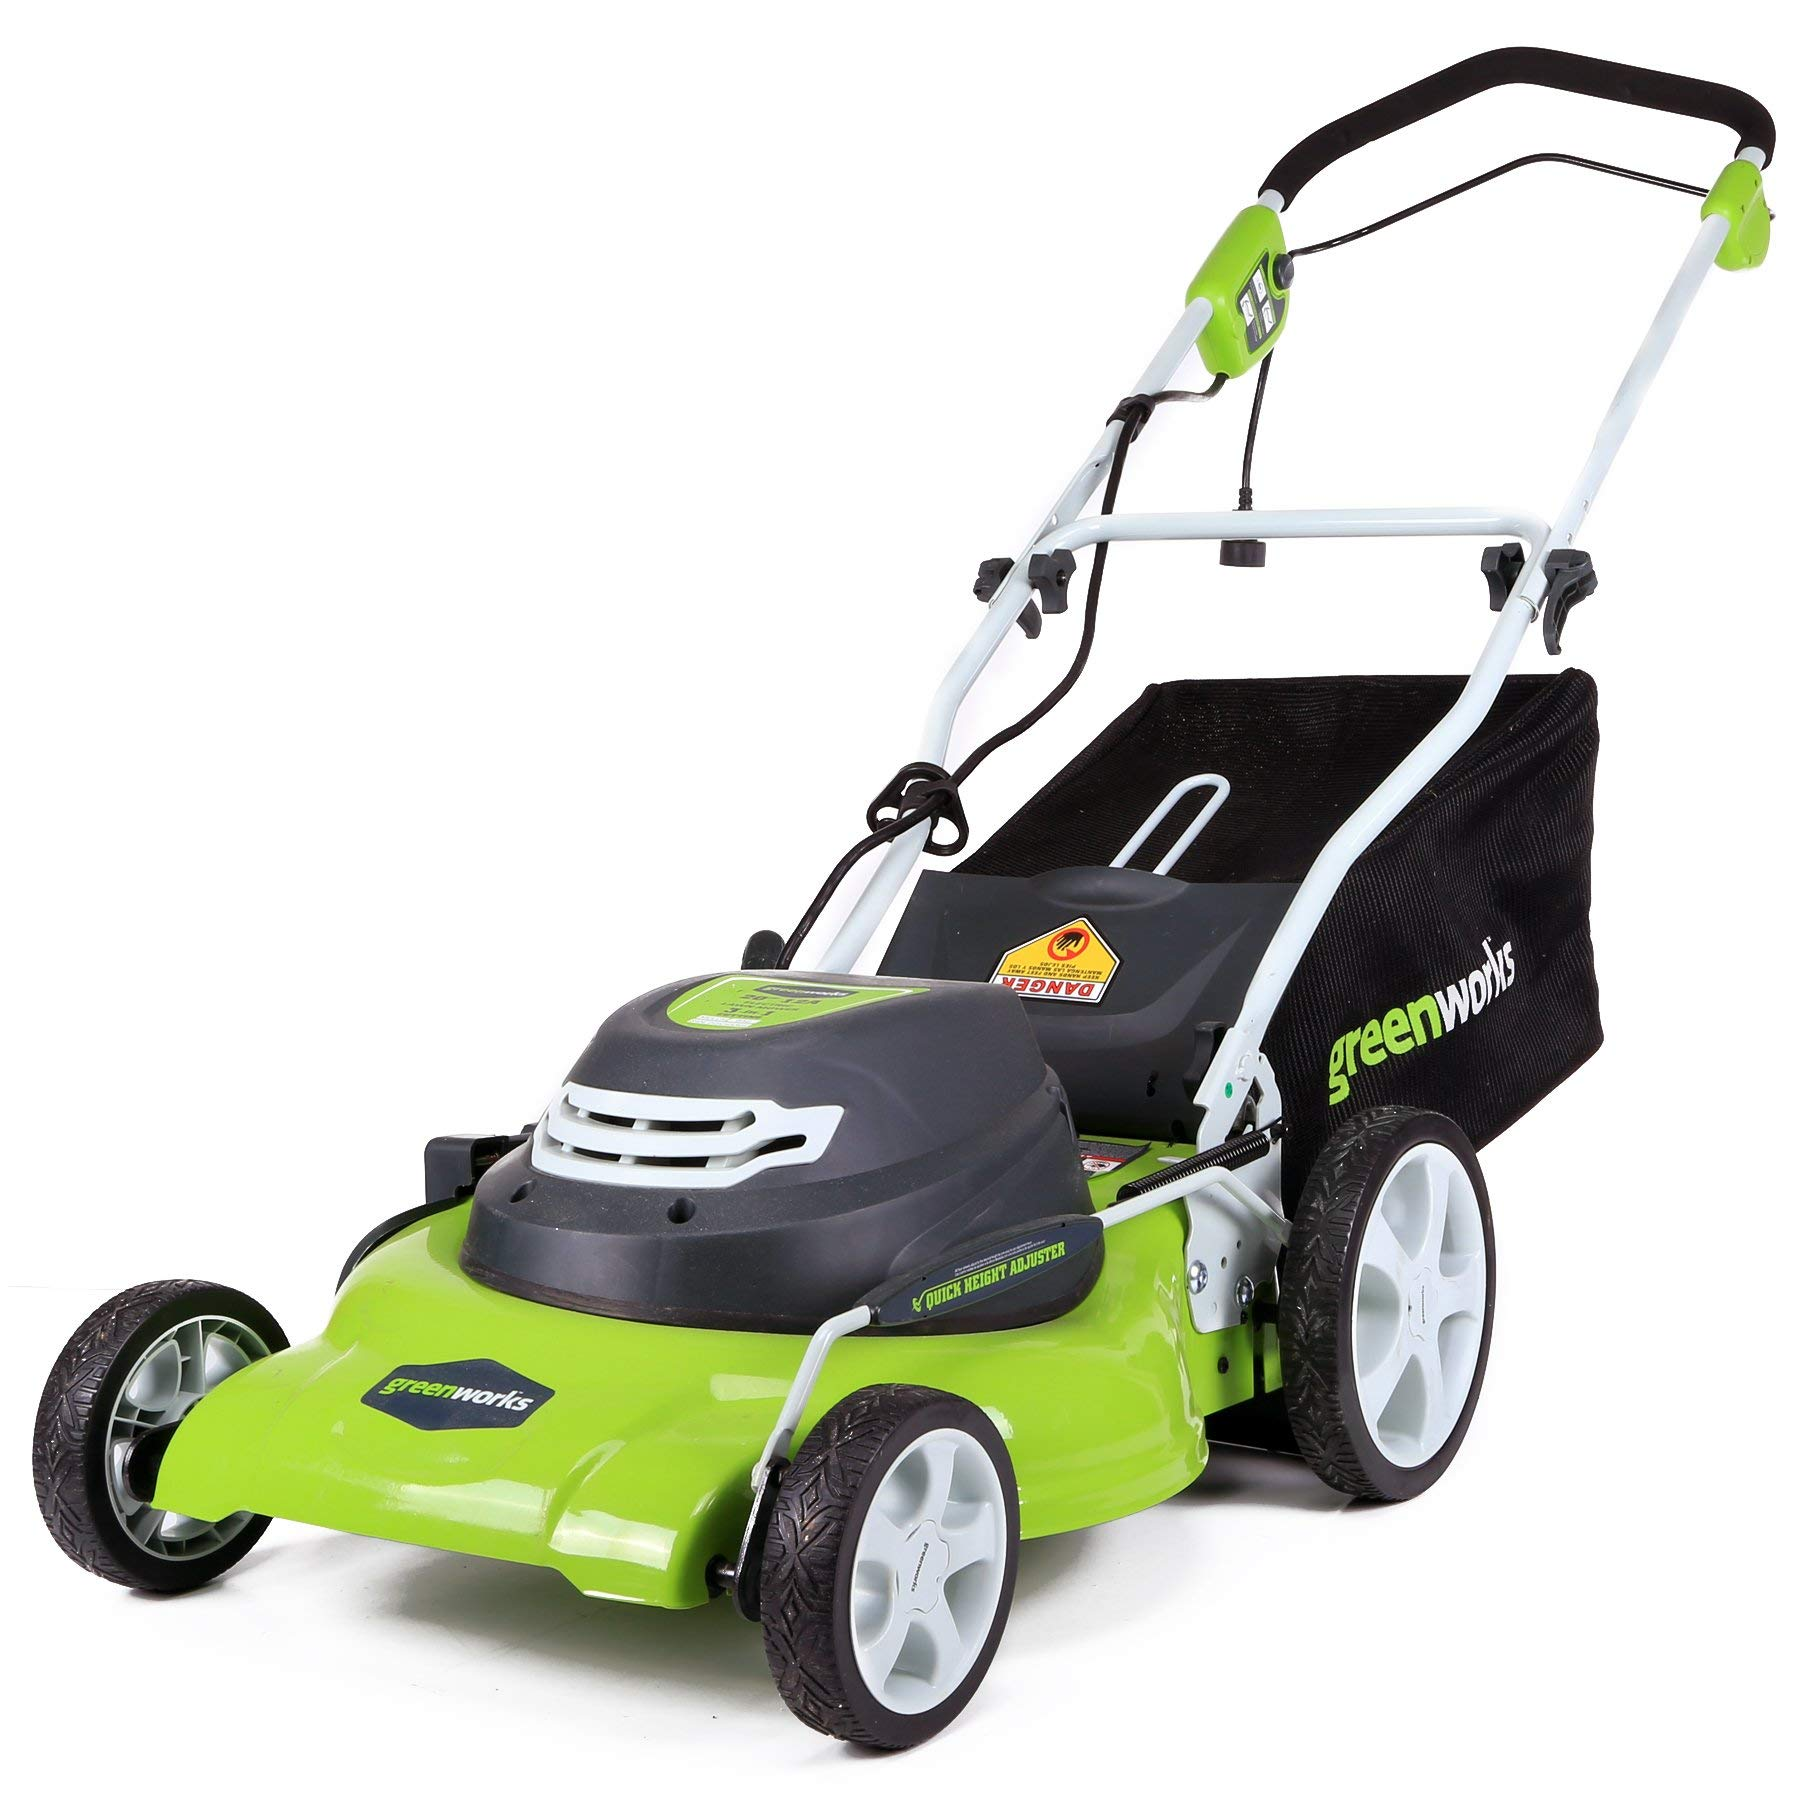 Greenworks 20-Inch 12 Amp Corded Lawn Mower 25022 (Renewed) by Greenworks